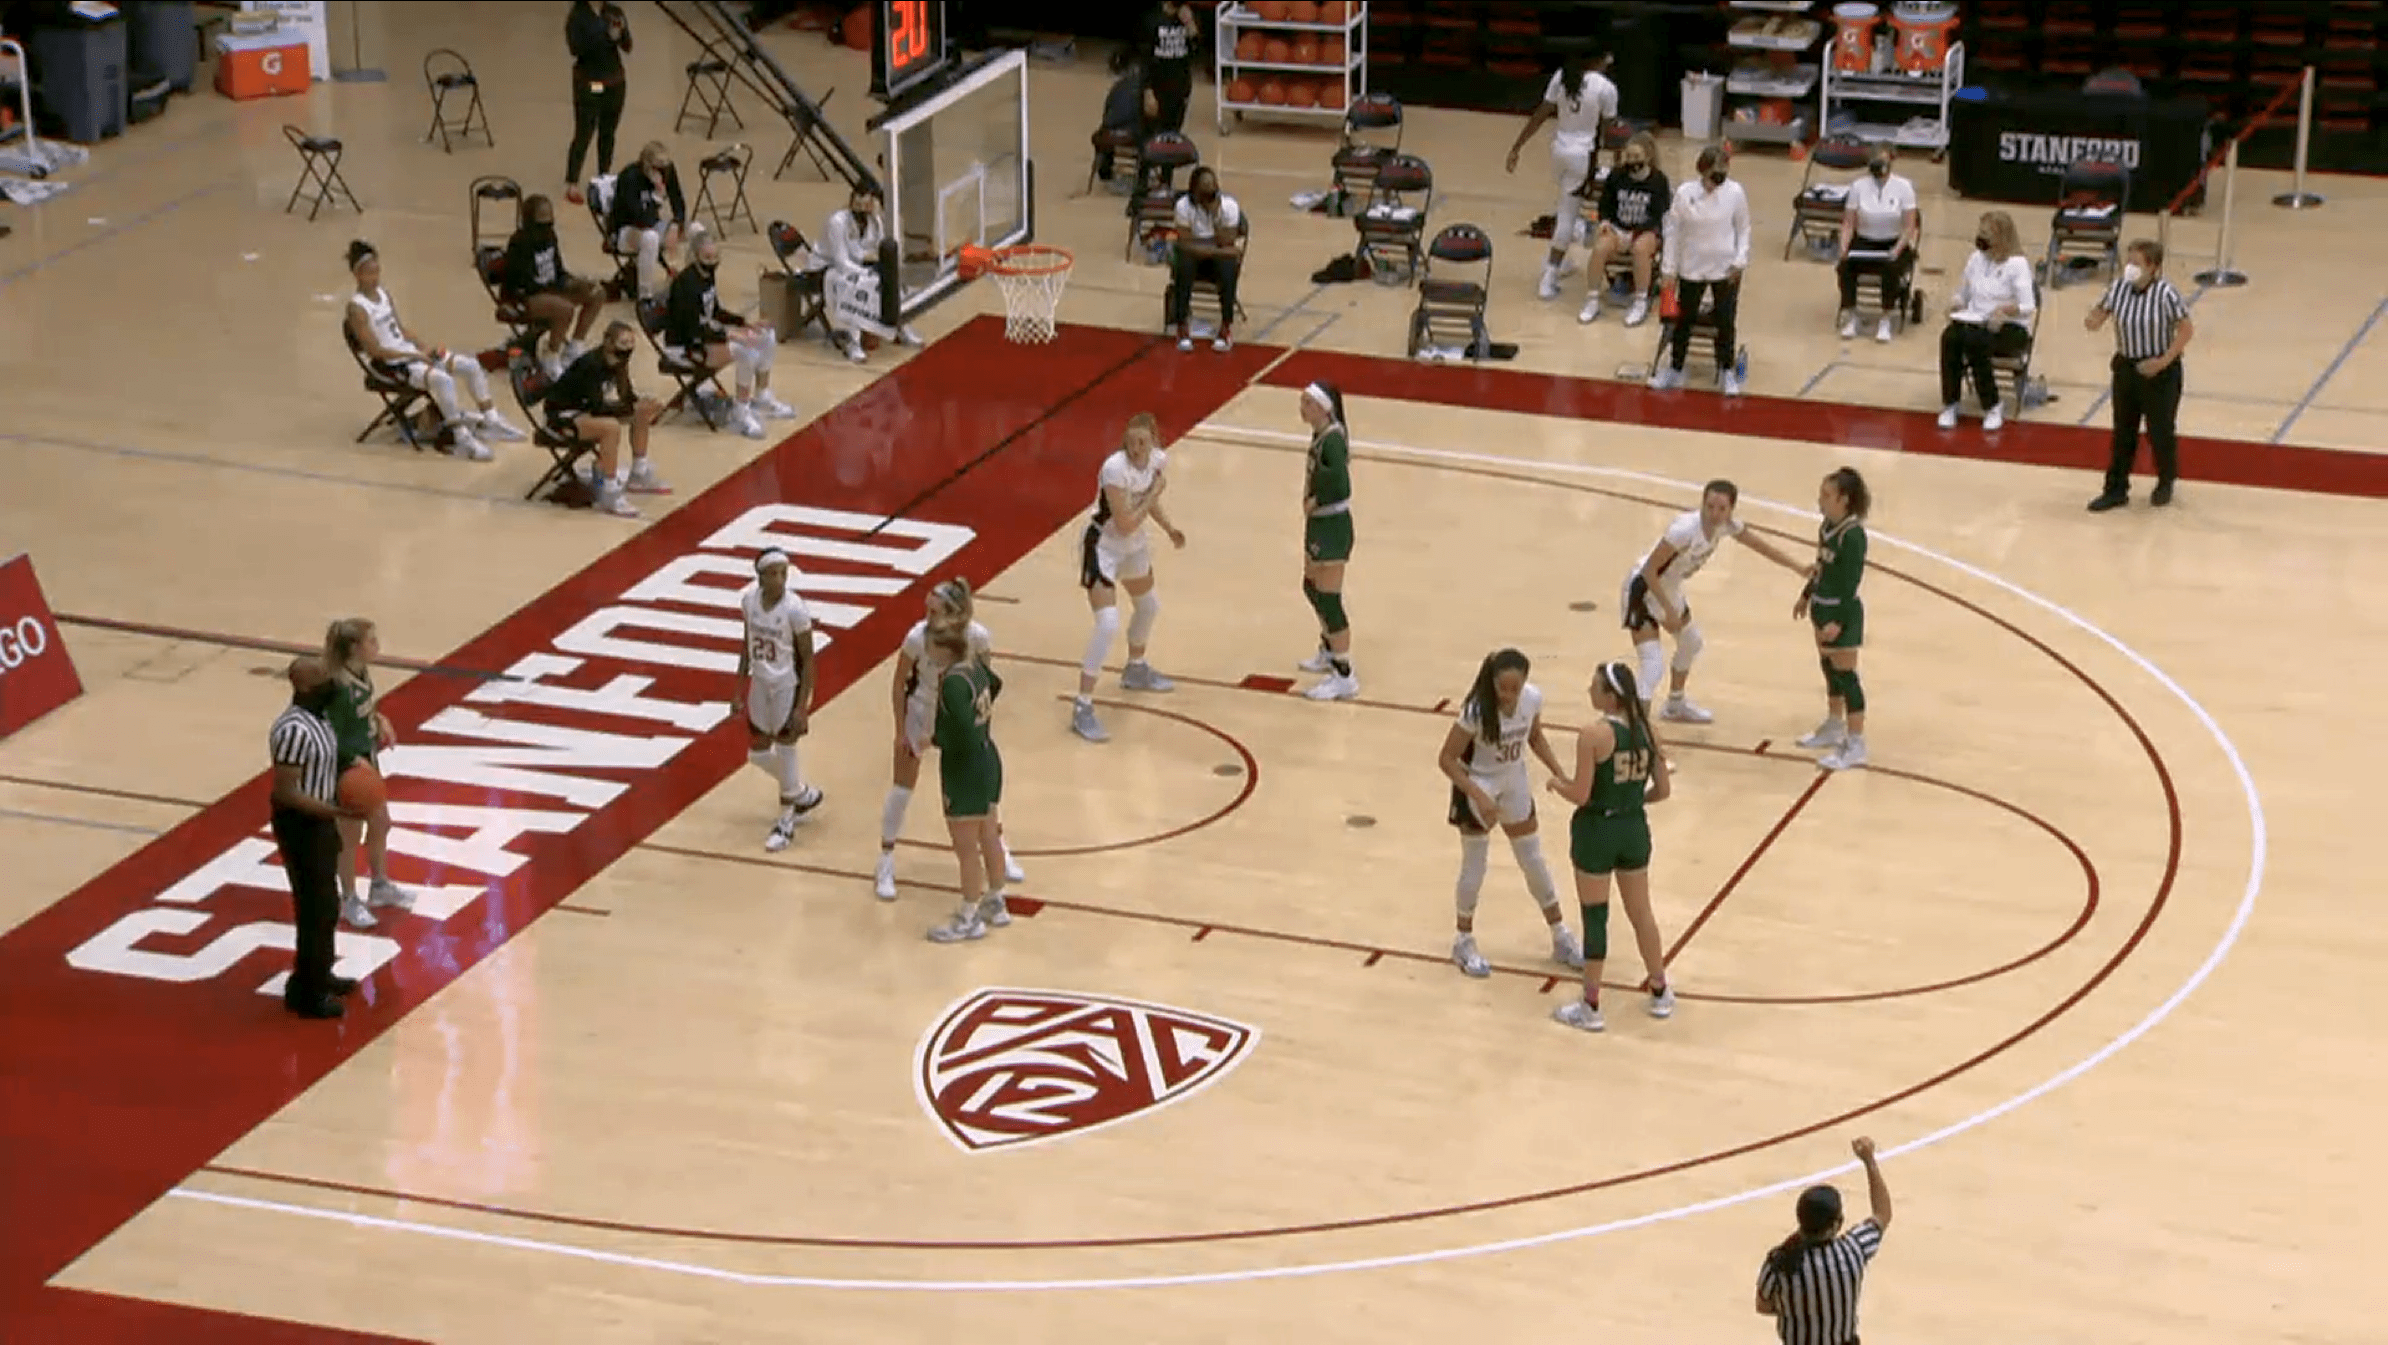 Stanford freshmen show up and show out in season opener rout of Cal Poly